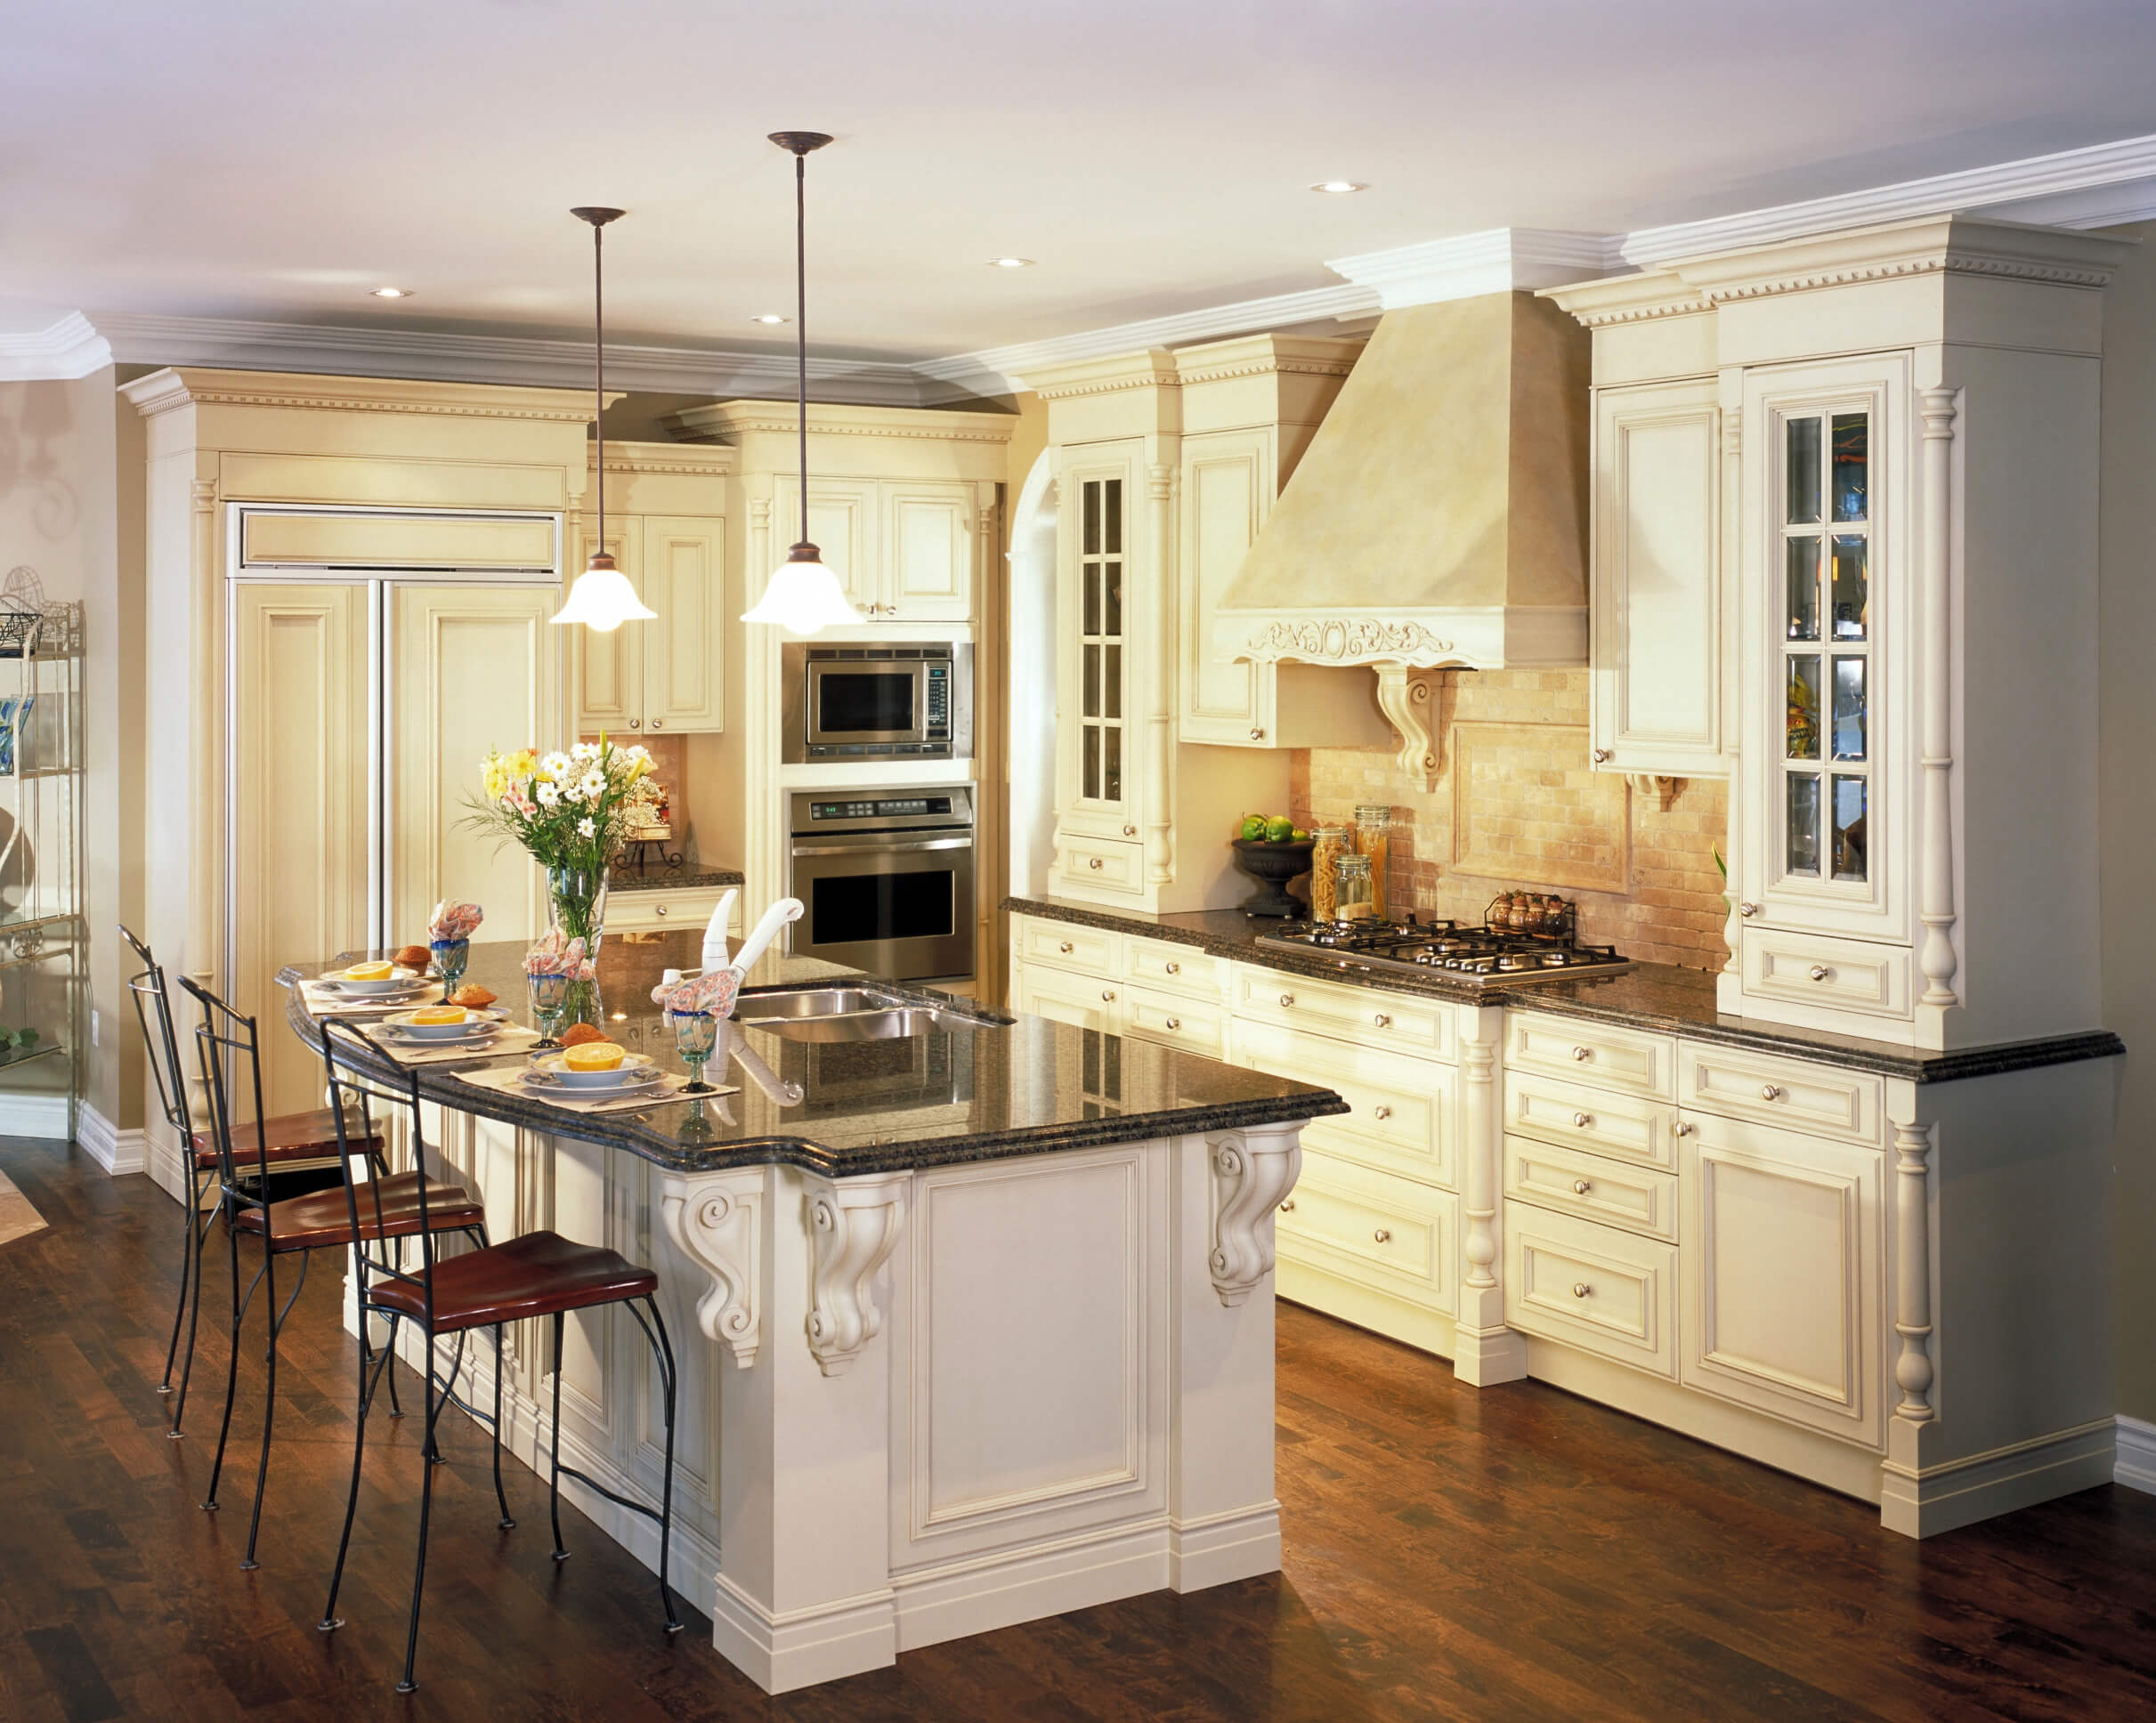 dream kitchen designs cabinets for kitchen island Kitchen featuring great contrast between dark wood flooring white cabinetry and black marble countertops